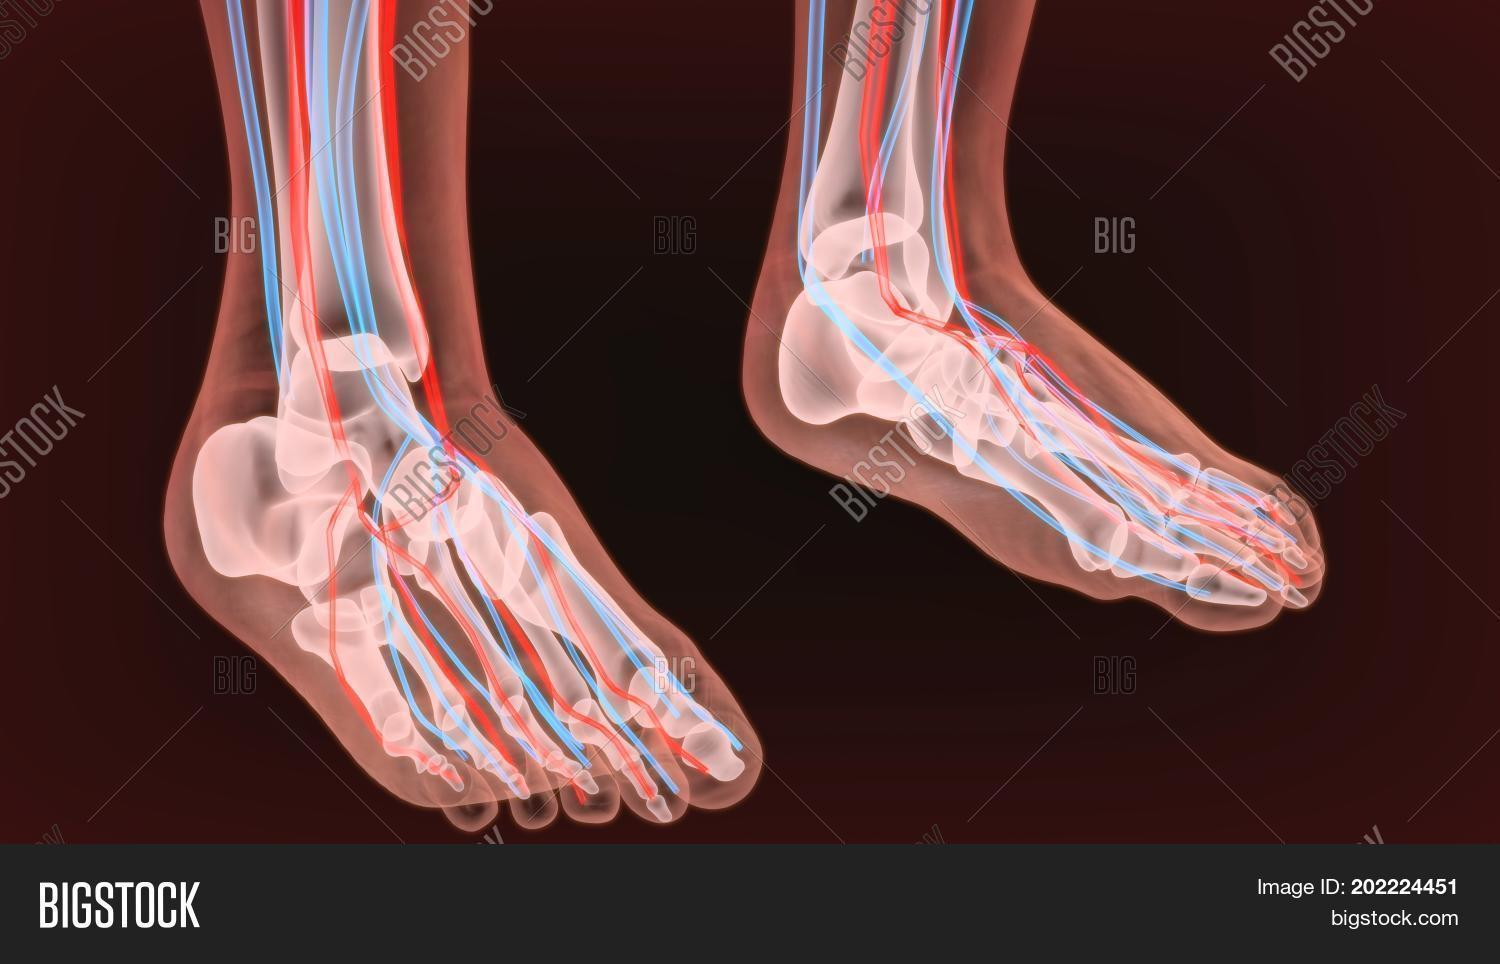 Foot Arteries Image & Photo (Free Trial) | Bigstock